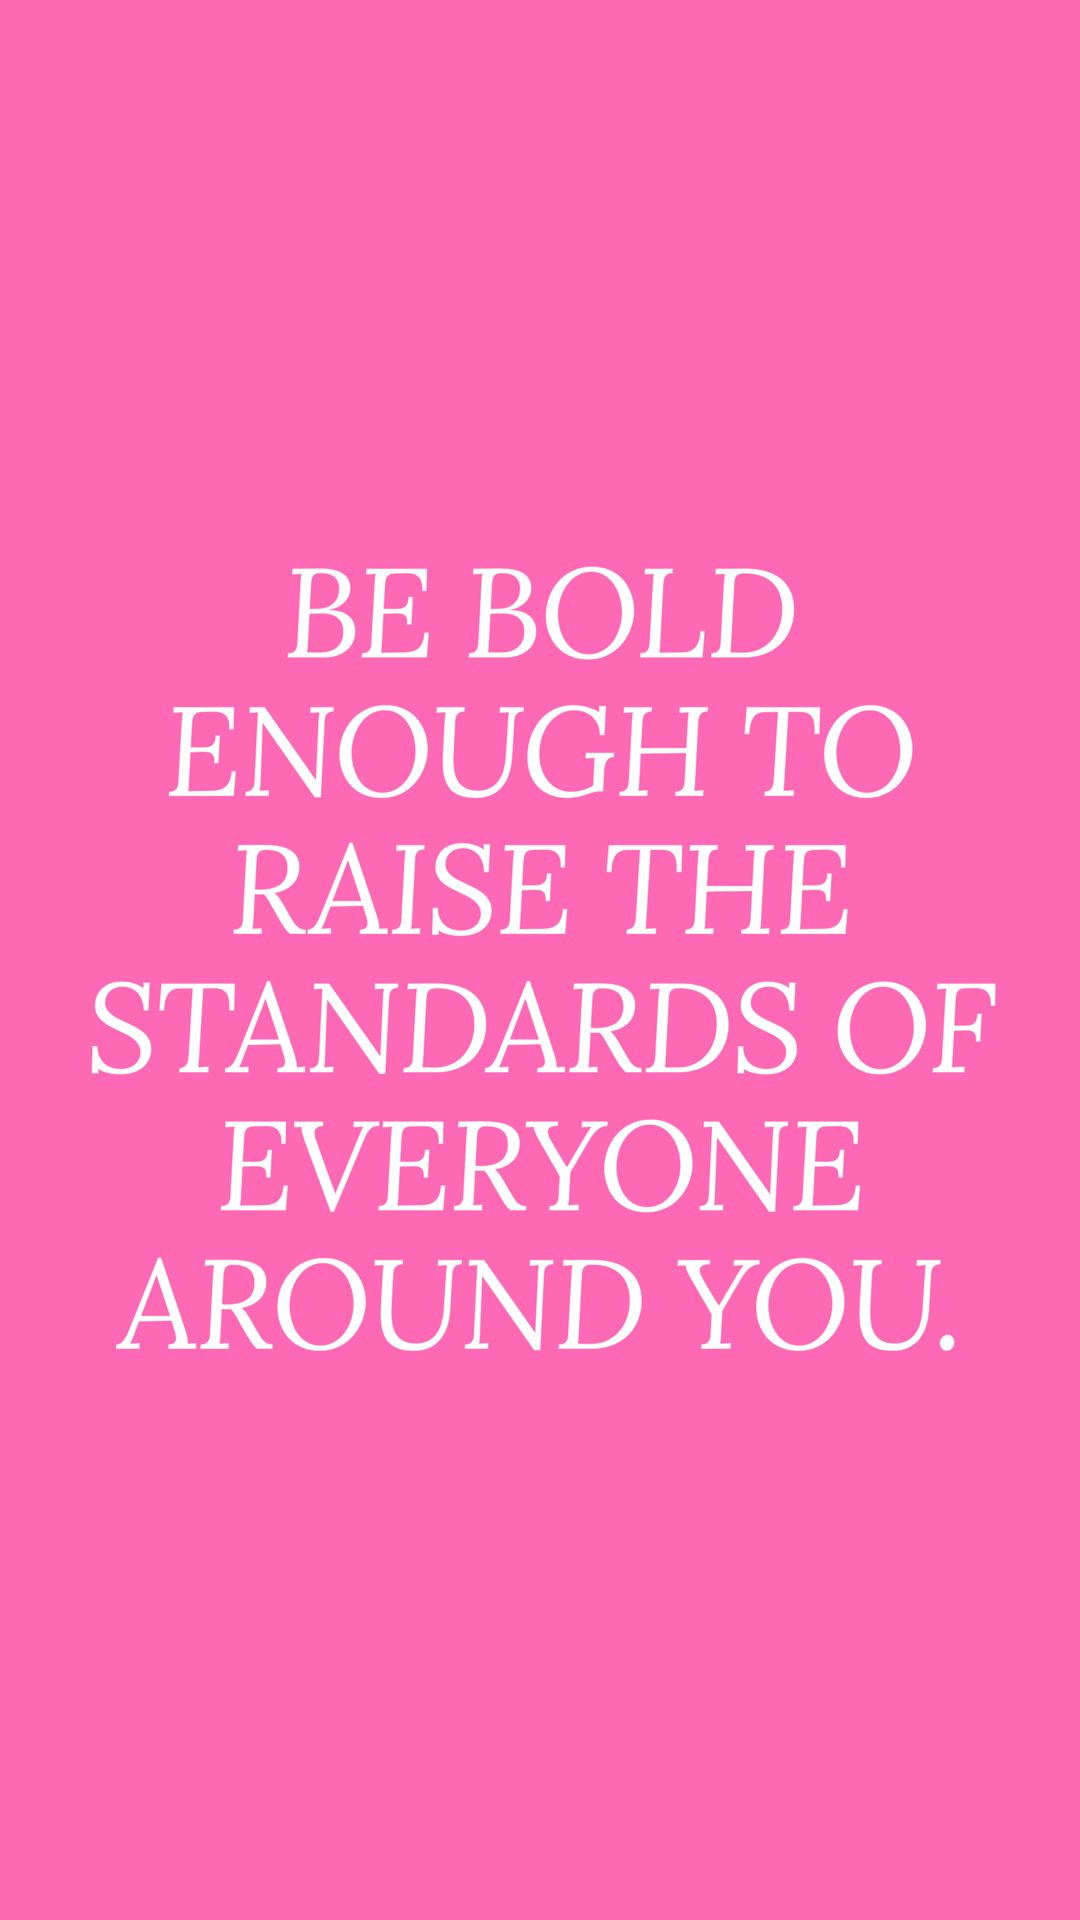 Be bold quotes